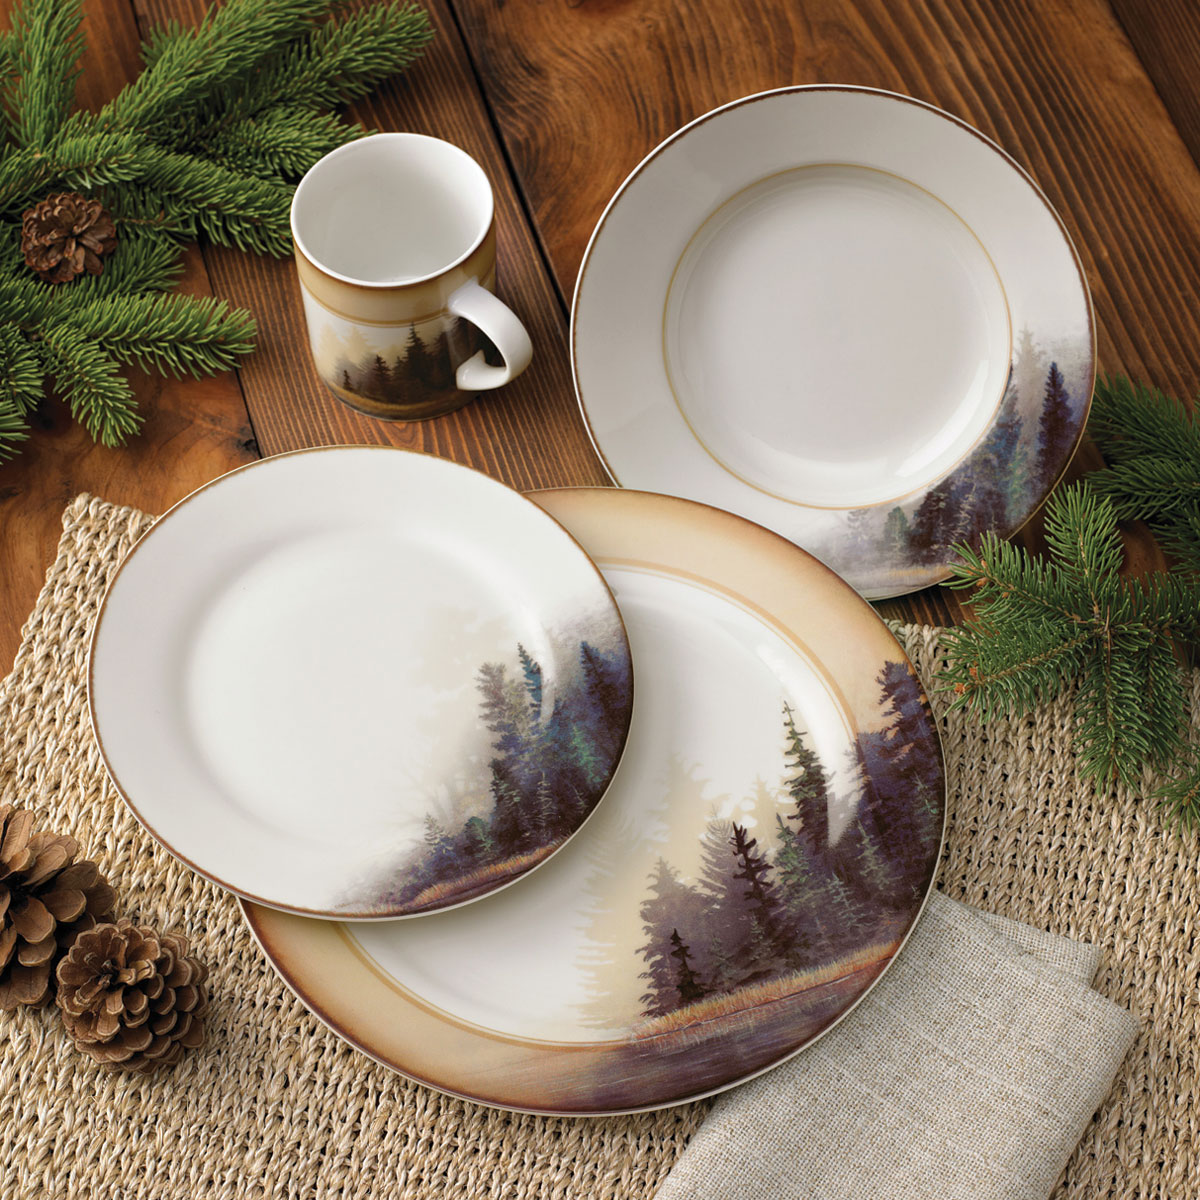 Misty Forest Cabin Dinnerware Set   16 Pcs   Cabin Dining Tableware    Walmart.com